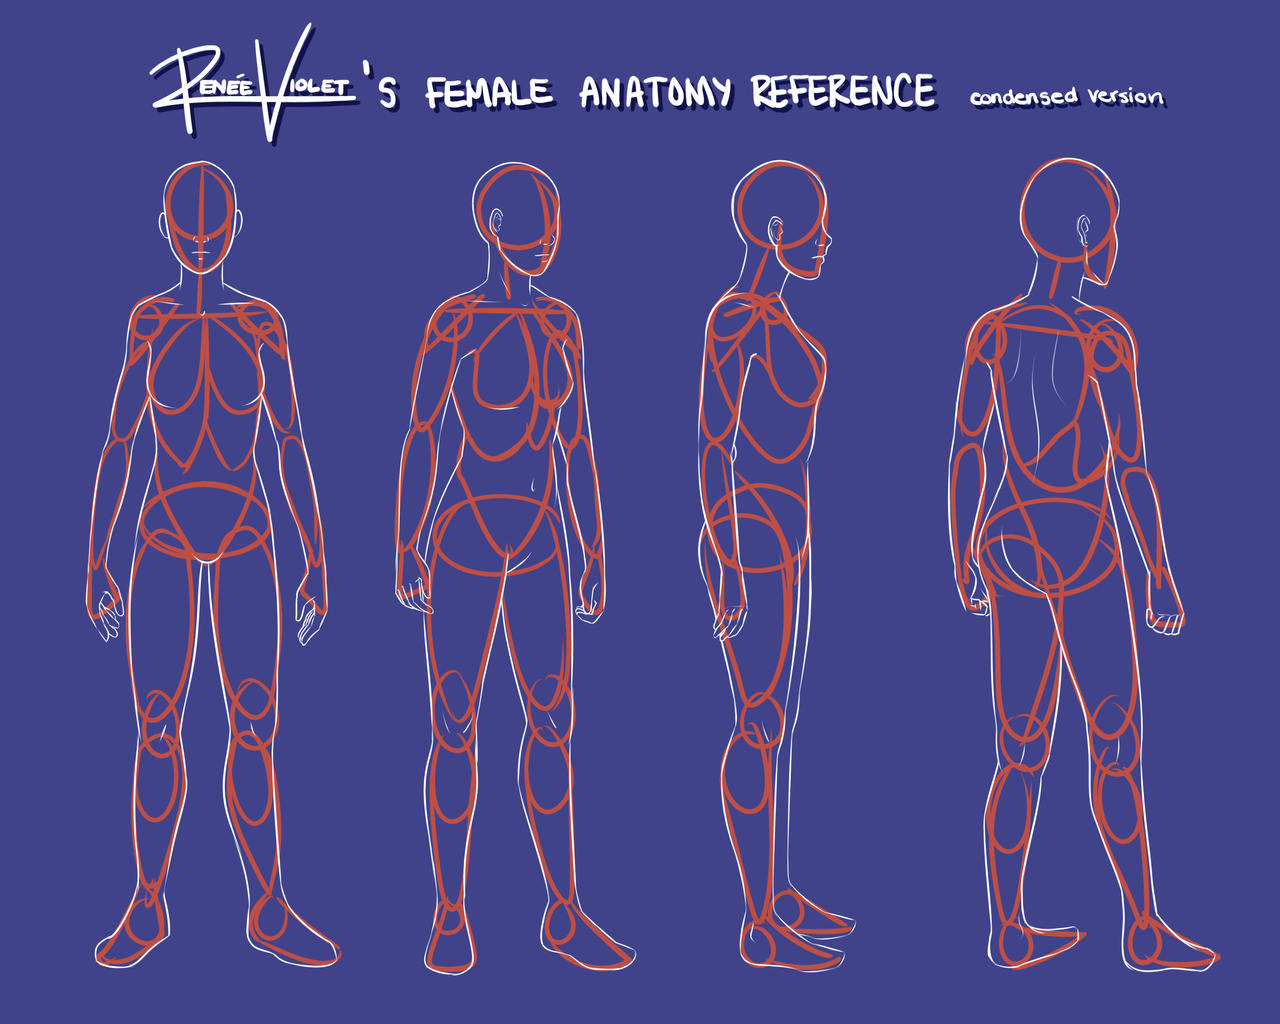 Female Anatomy Reference - condensed version by ReneeViolet on ...